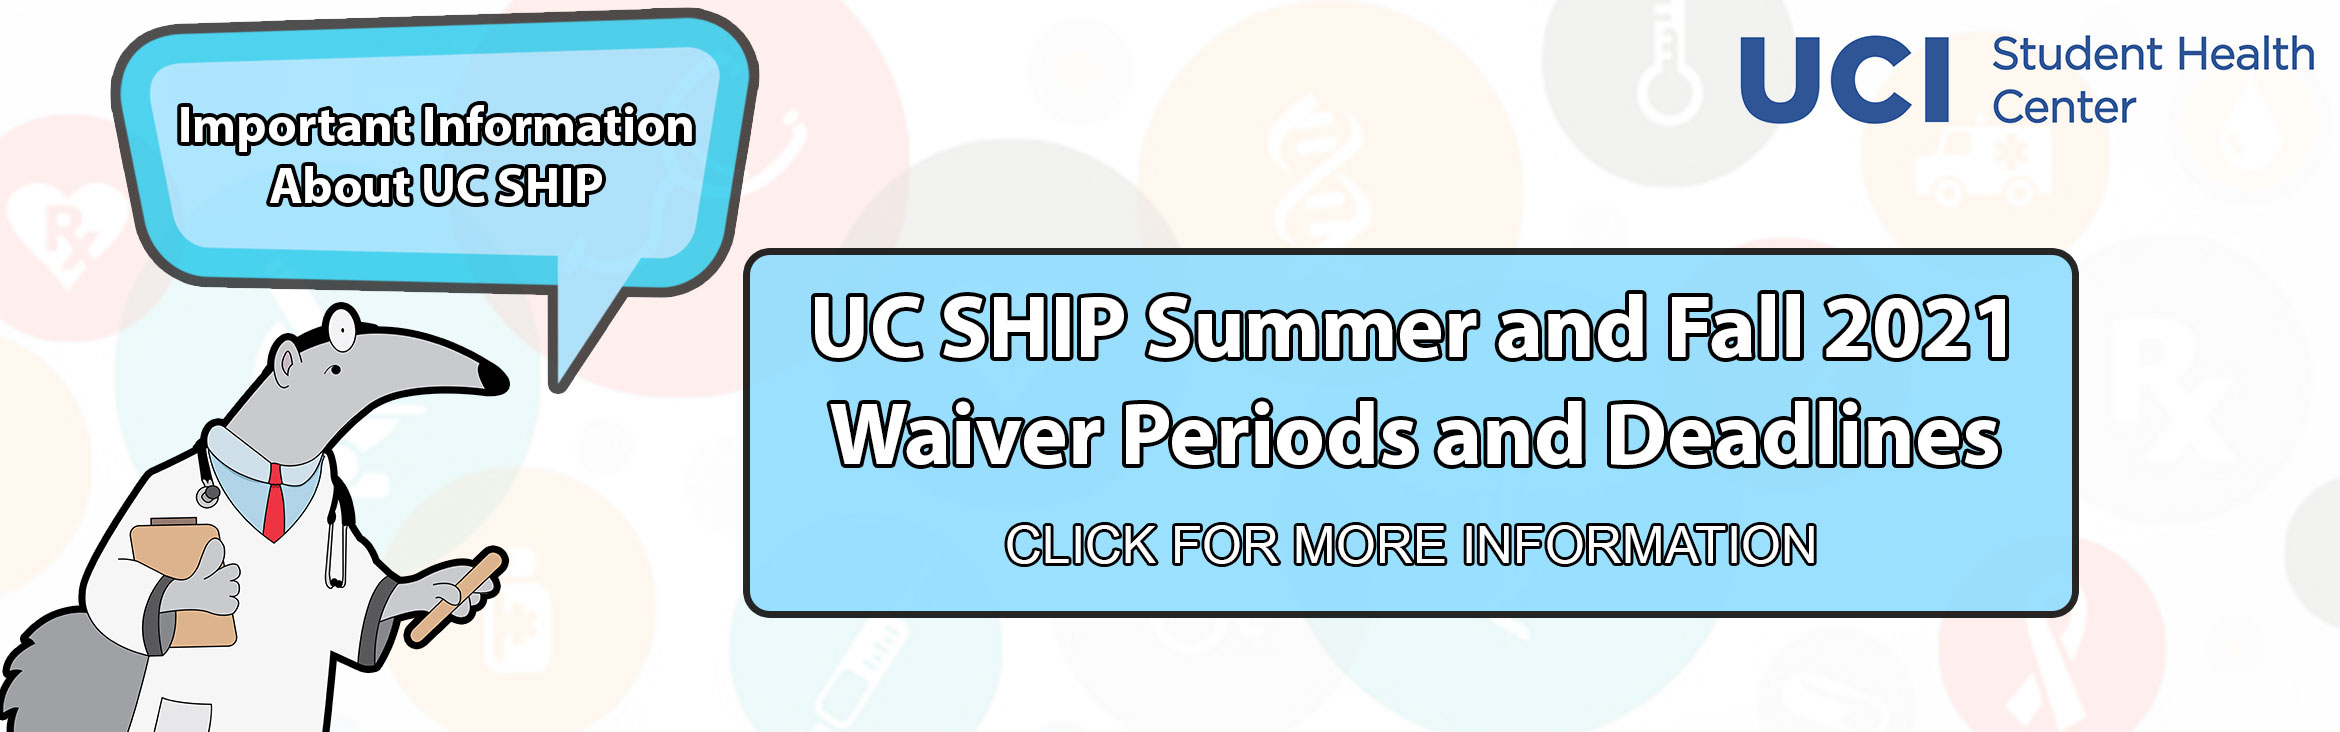 Important Information About UC SHIP, UC SHIP Summer and Fall 2021  Waiver Periods and Deadlines. Click for more information